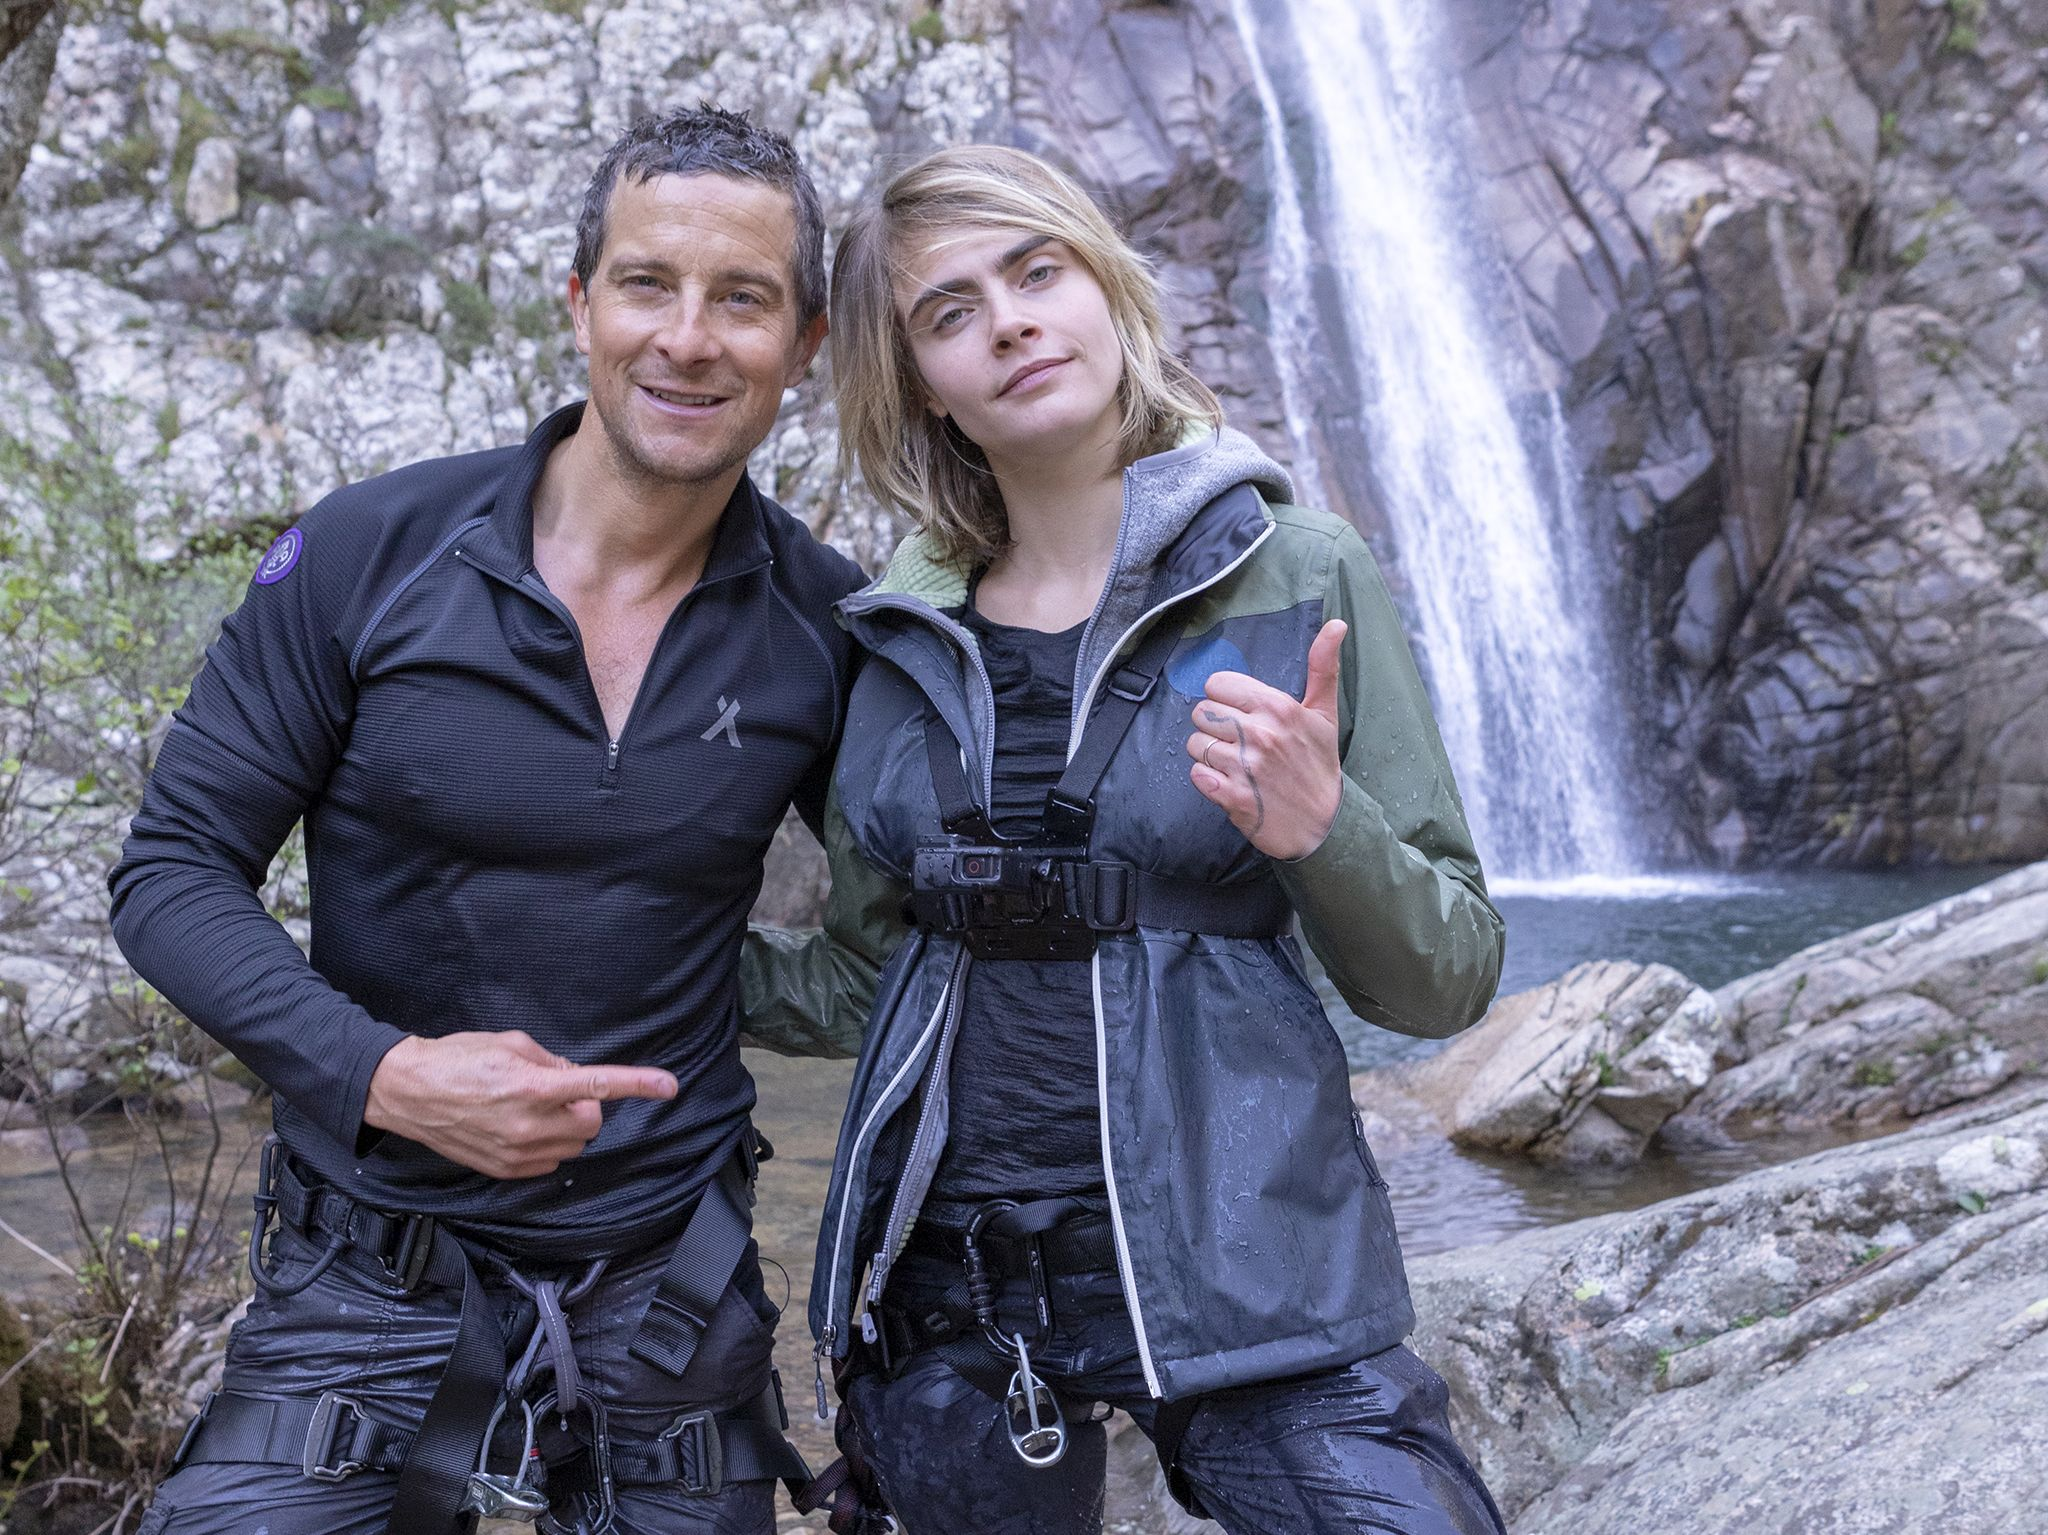 Sardinia, Italy: (L to R) Bear Grylls and Cara Delevingne about to be extracted.  This image is... [Photo of the day - نوامبر 2019]